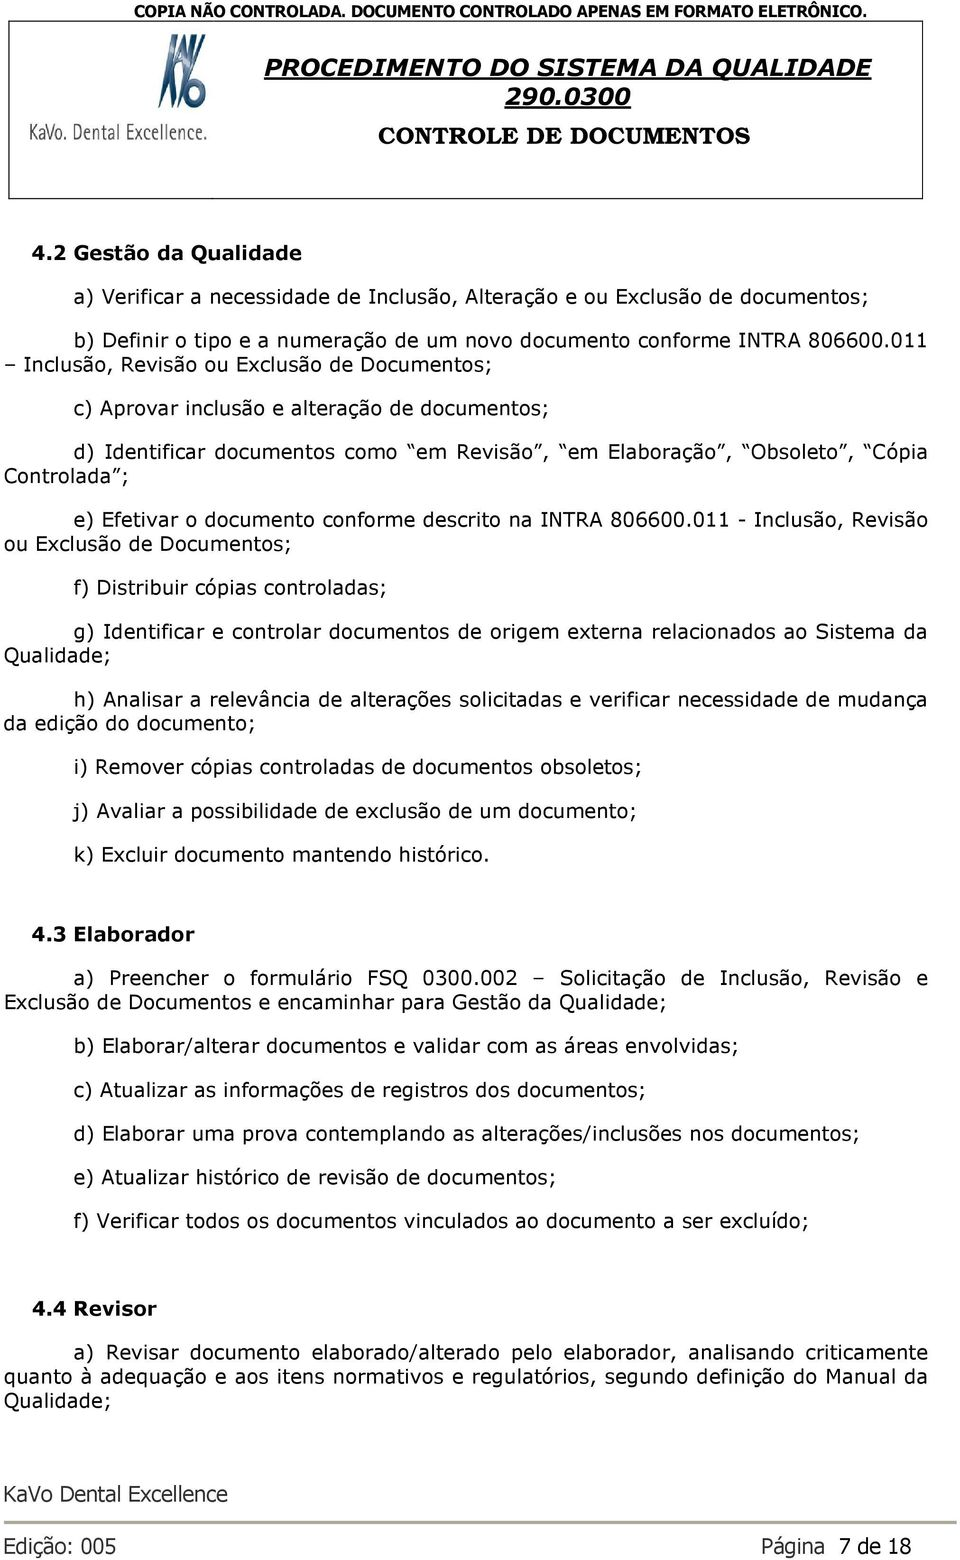 documento conforme descrito na INTRA 806600.